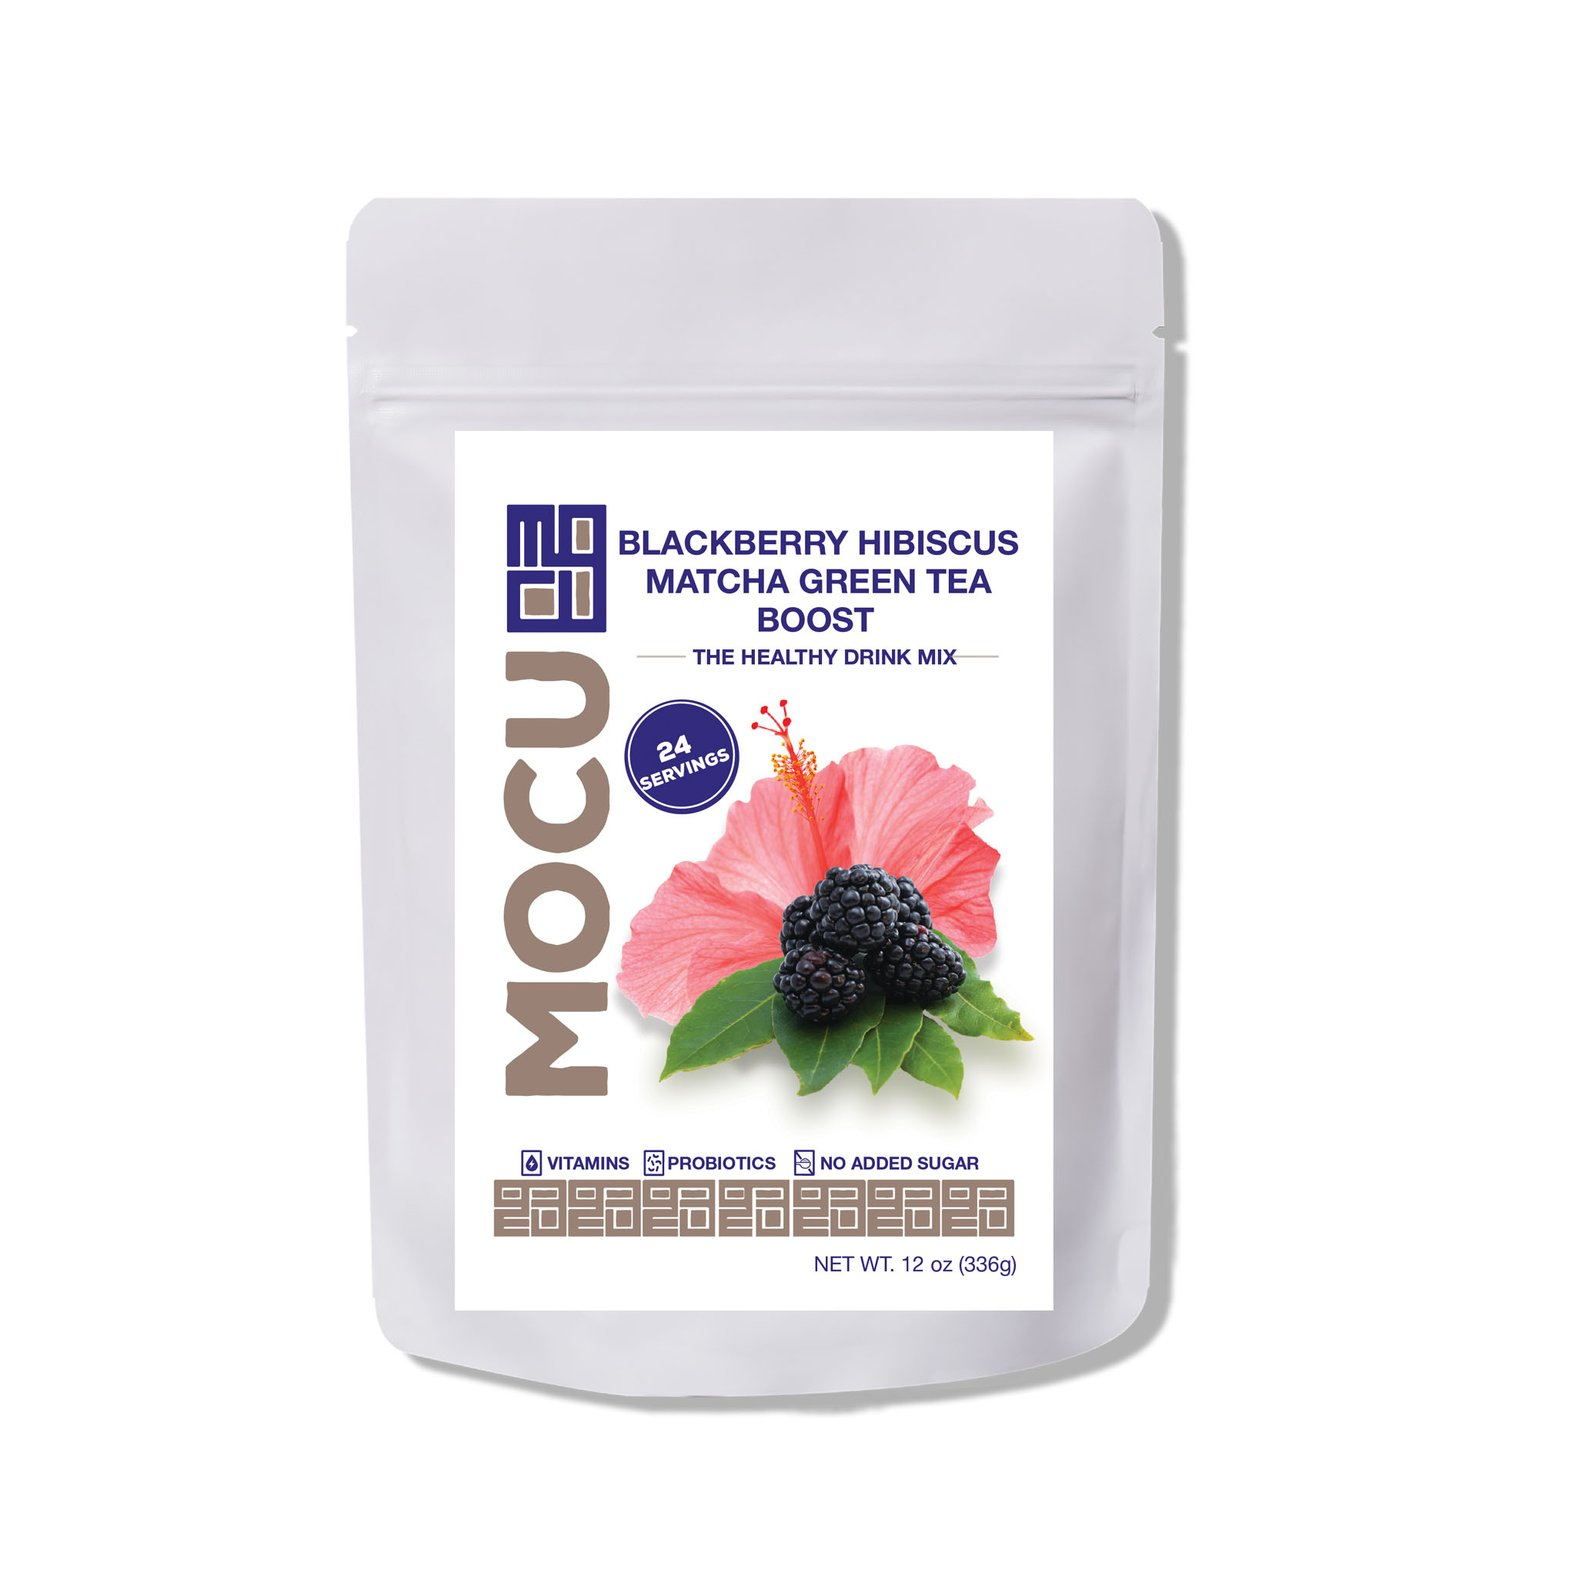 mocu-blackberry-hibiscus-green-tea-boost-healthy-drink-mix-front.jpg